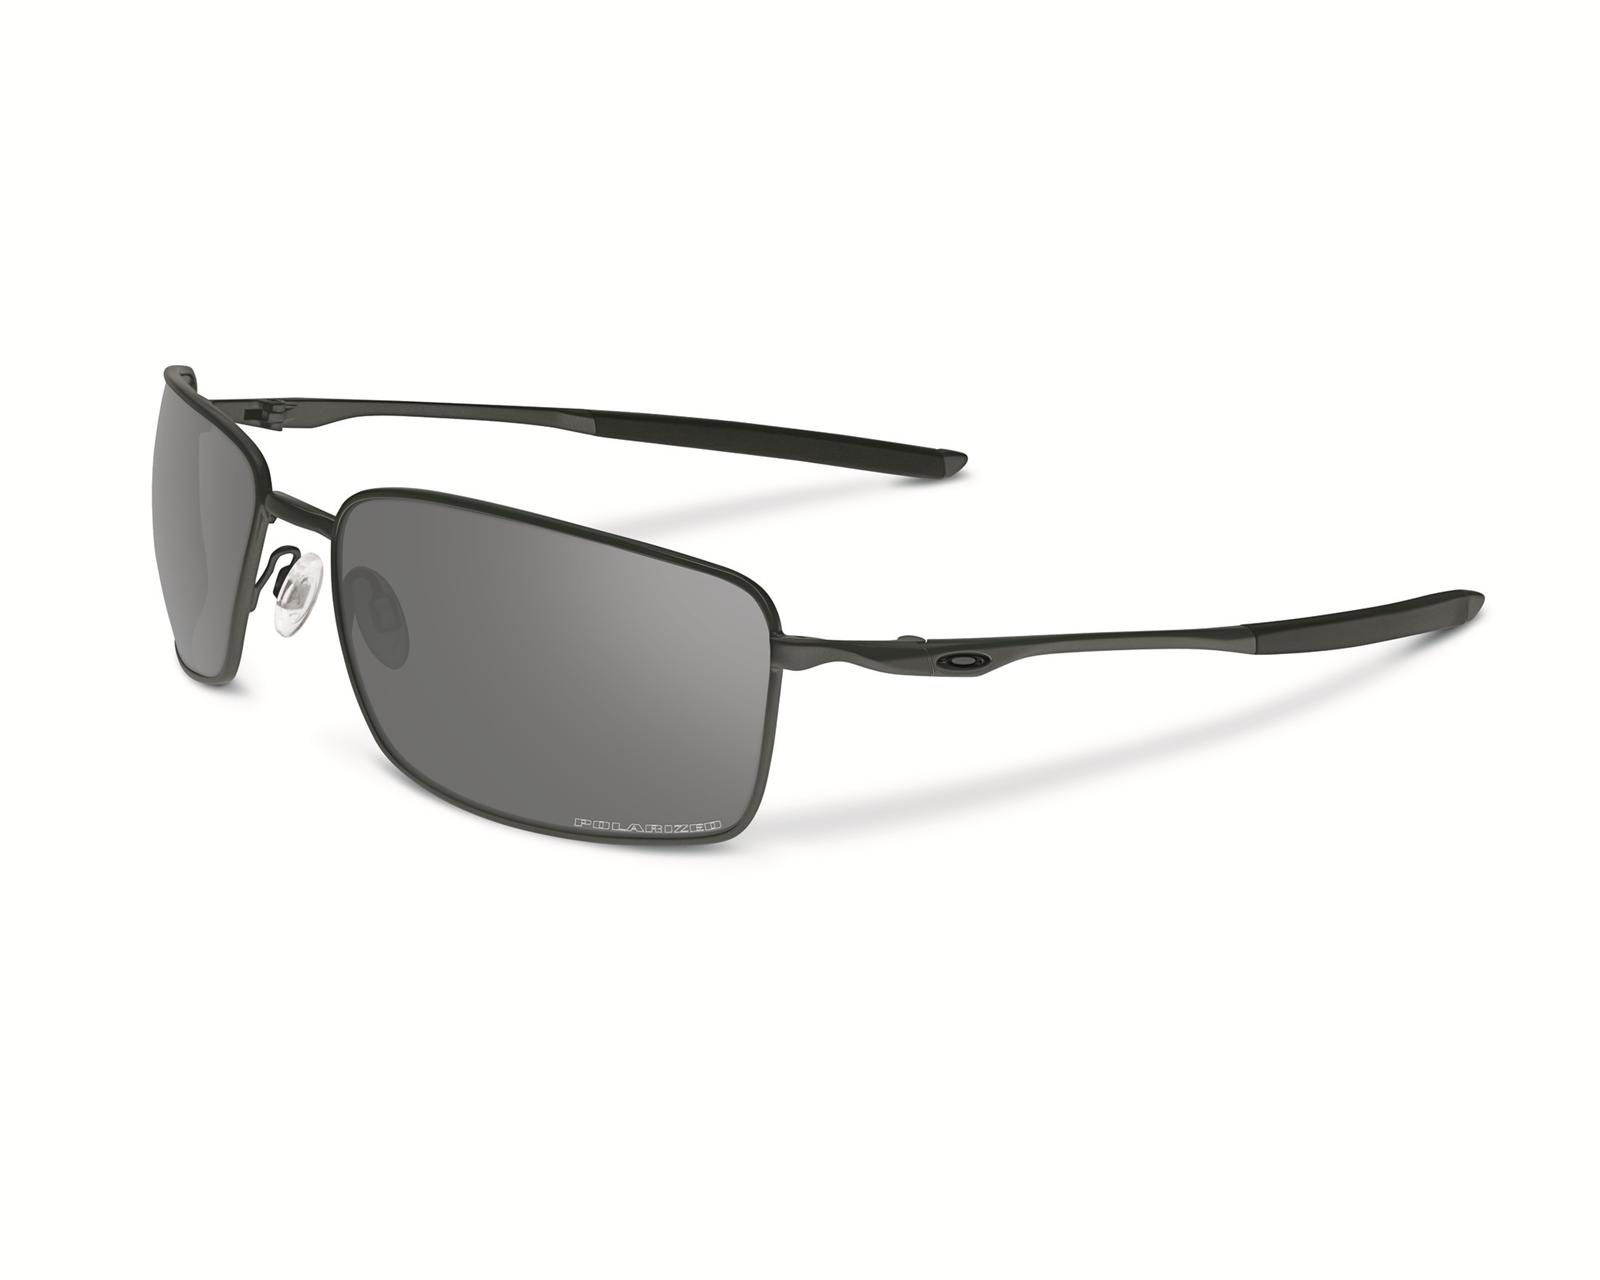 95f96f969b5 Oakley Square Wire Sunglasses OO4075-04 - Free Shipping on Orders Over  99  at Summit Racing